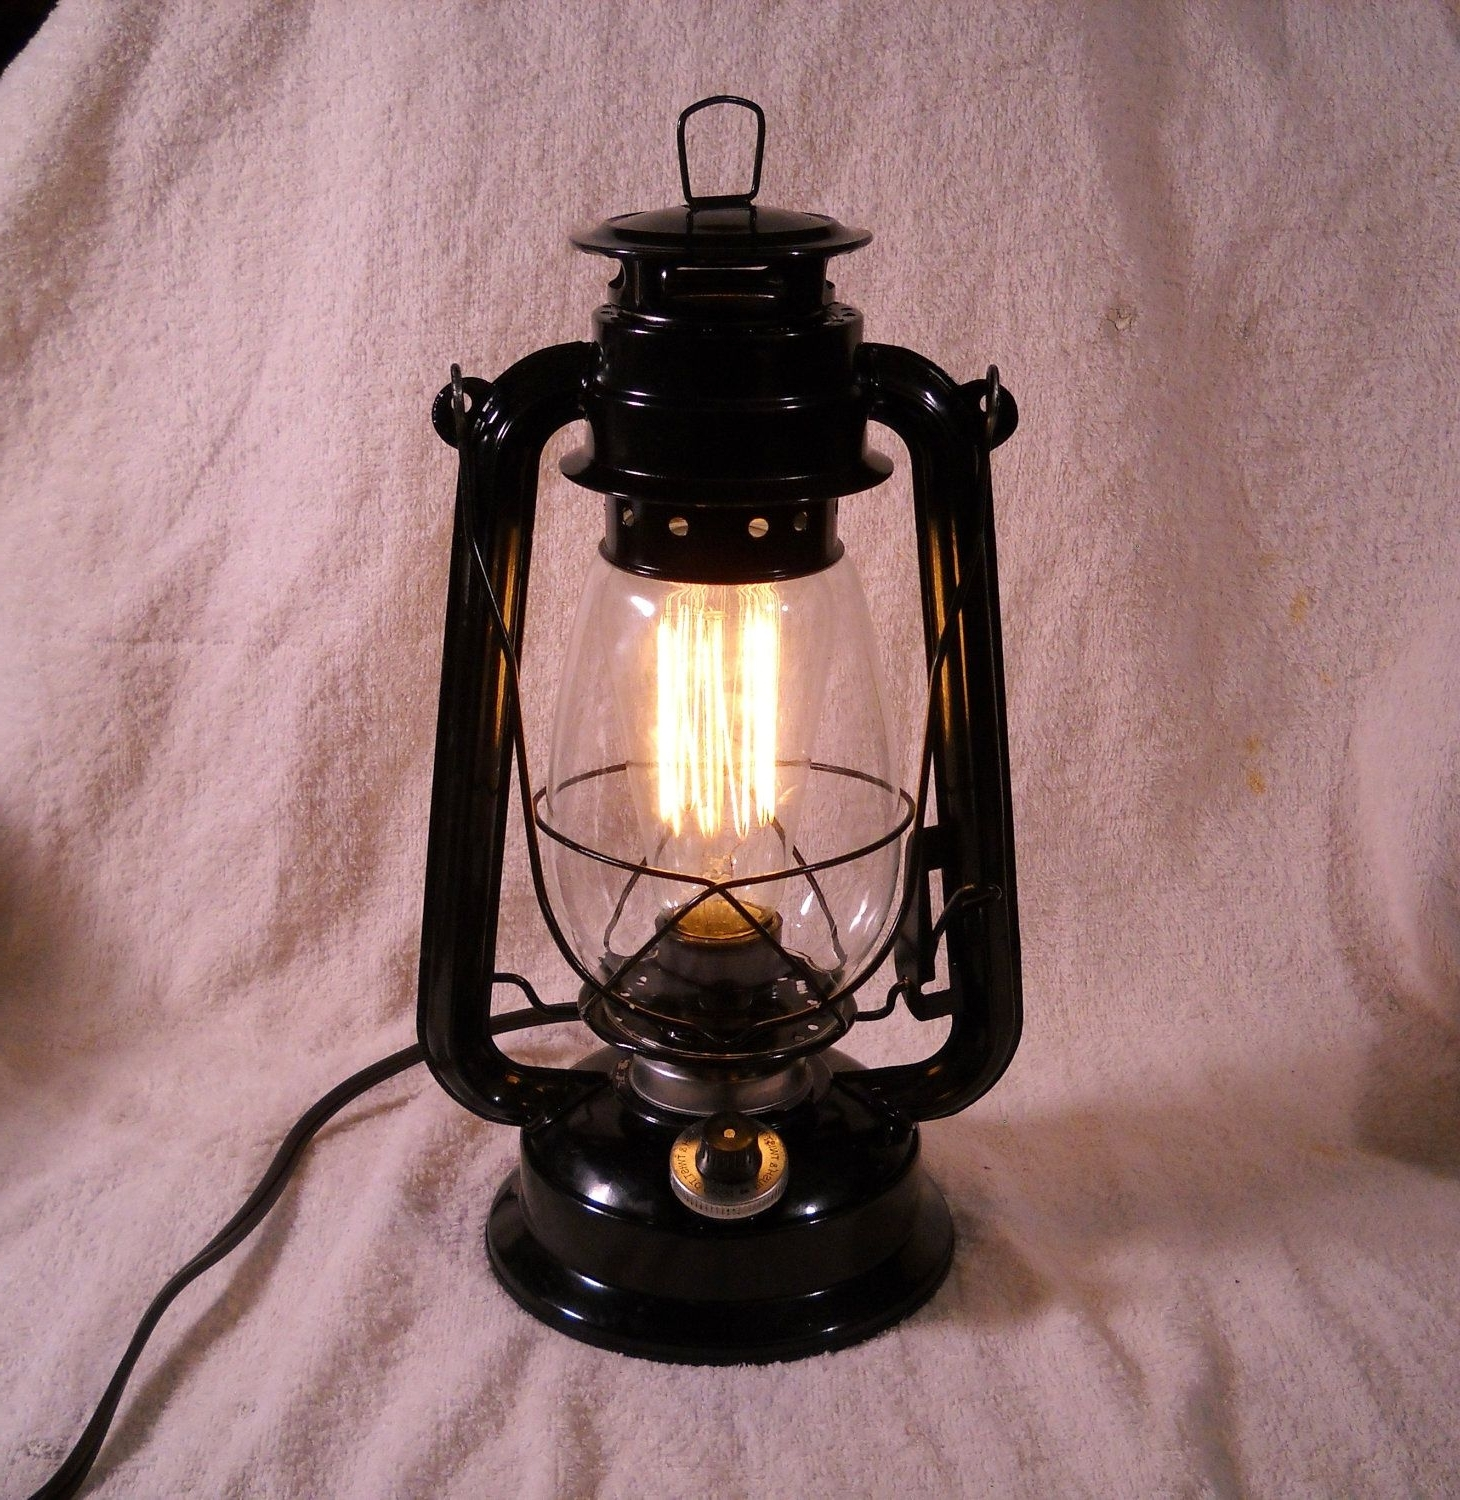 Rustic Outdoor Electric Lanterns In Favorite Black Electric Lantern Industrial Table Lamp Hanging Lighting With (View 13 of 20)